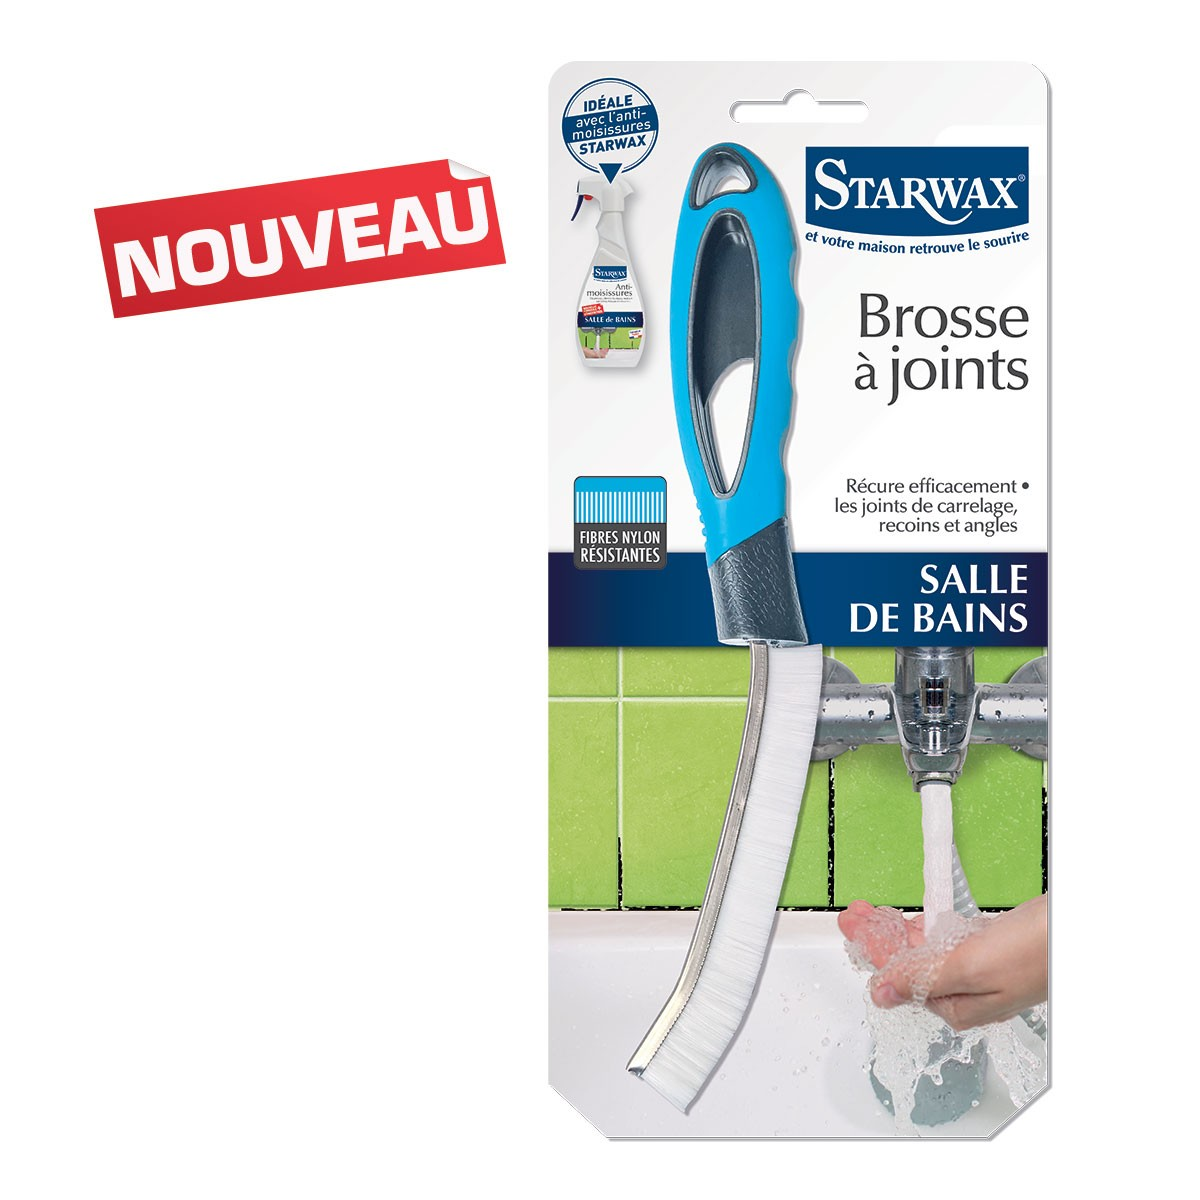 Brosse à joints - Starwax